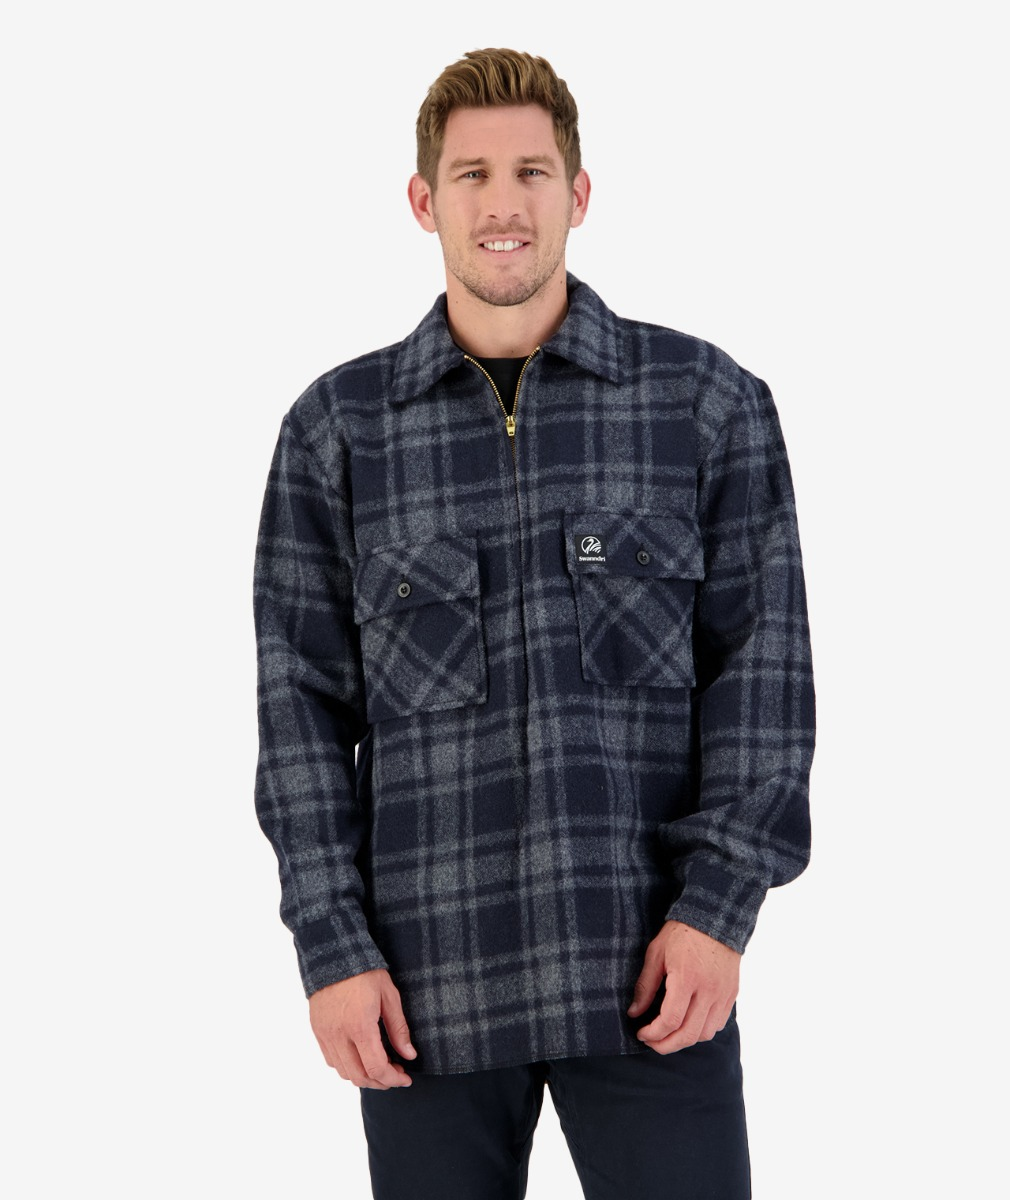 Men's Ranger Wool Zip Front Bush Shirt in Charcoal Grid